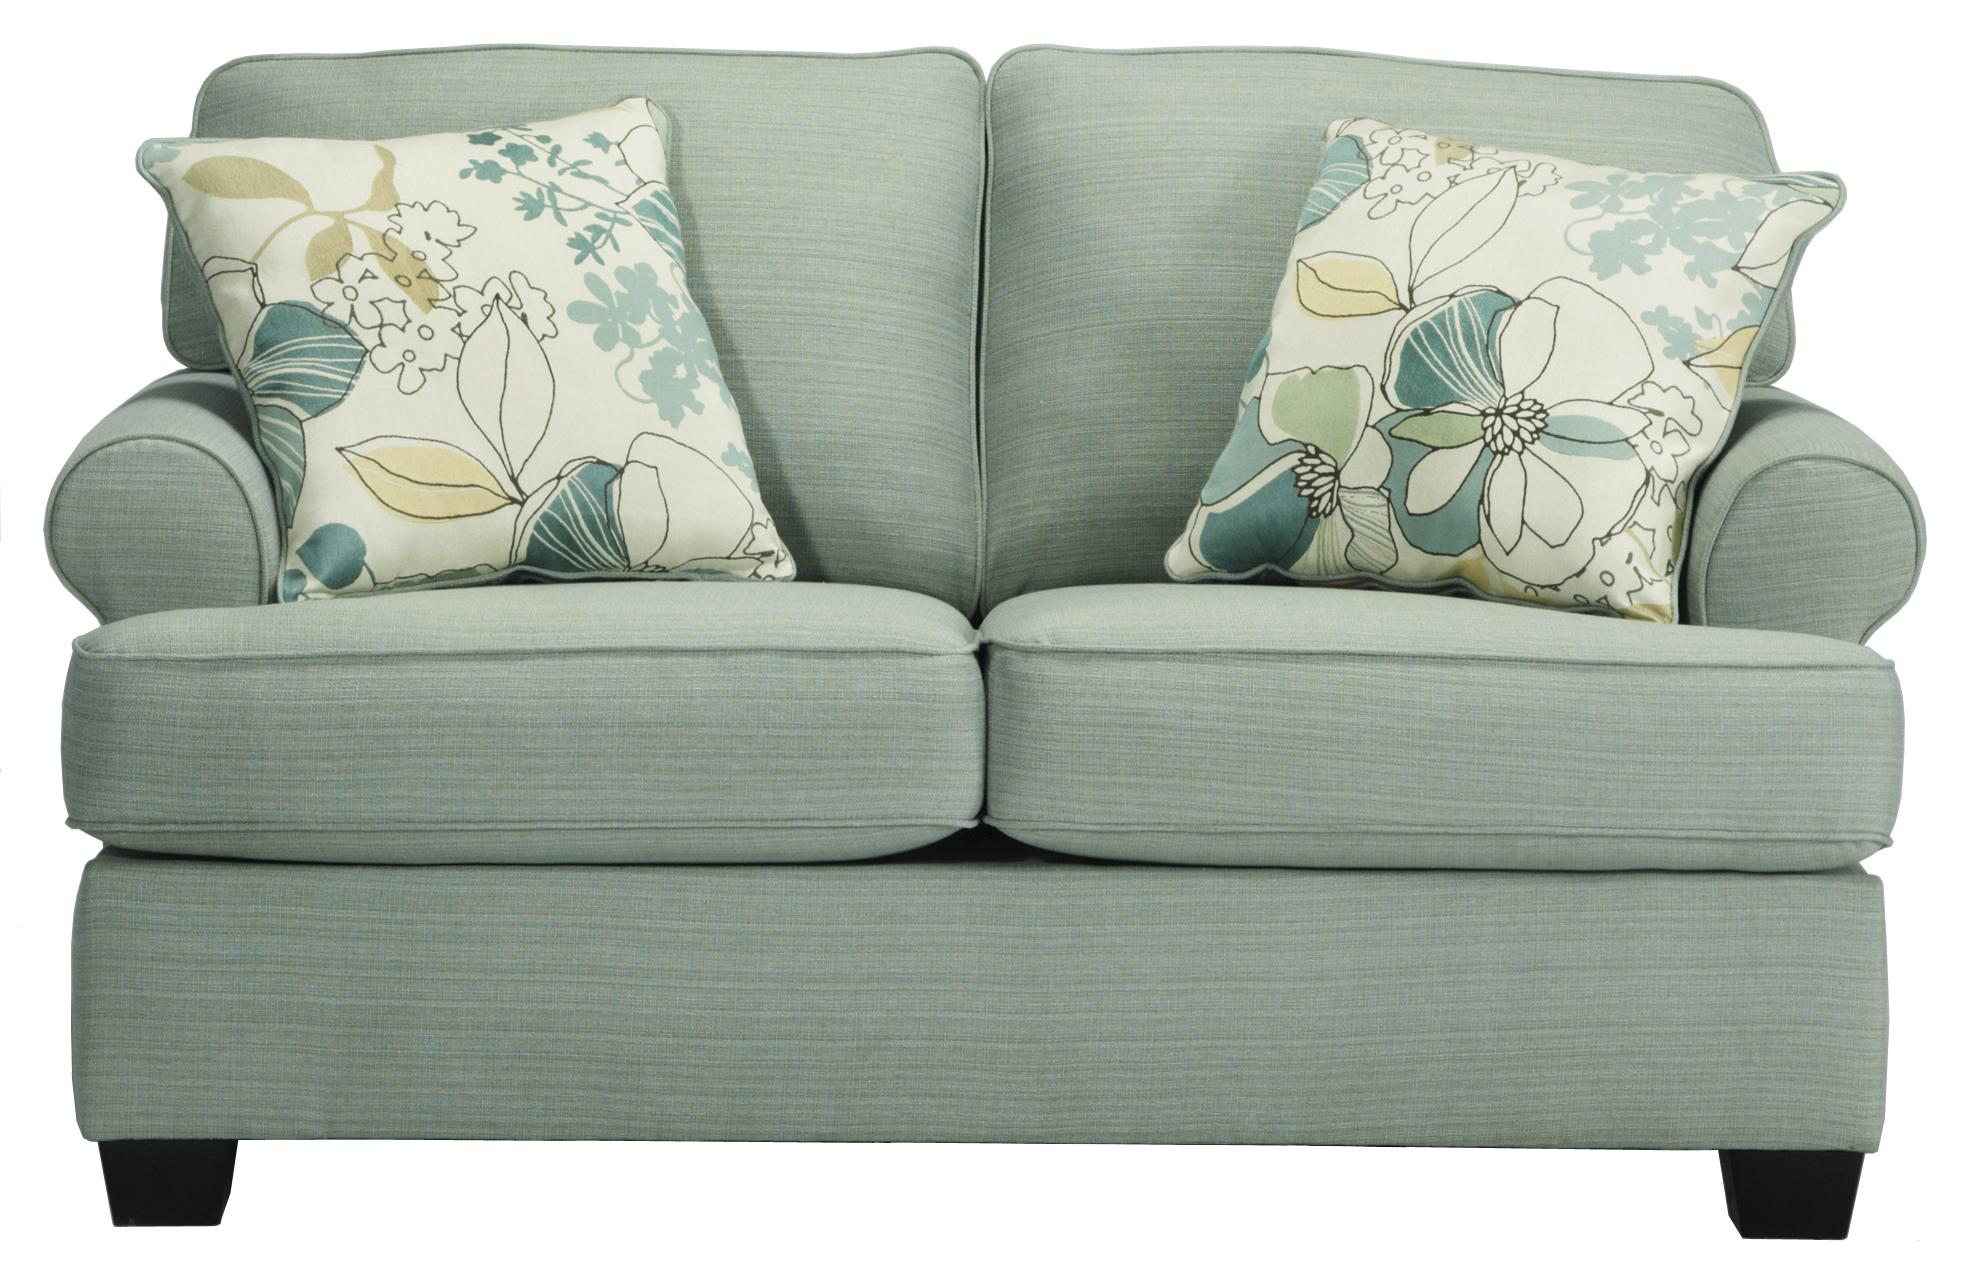 Signature Design by Ashley Daystar - Seafoam Loveseat - Item Number: 2820035